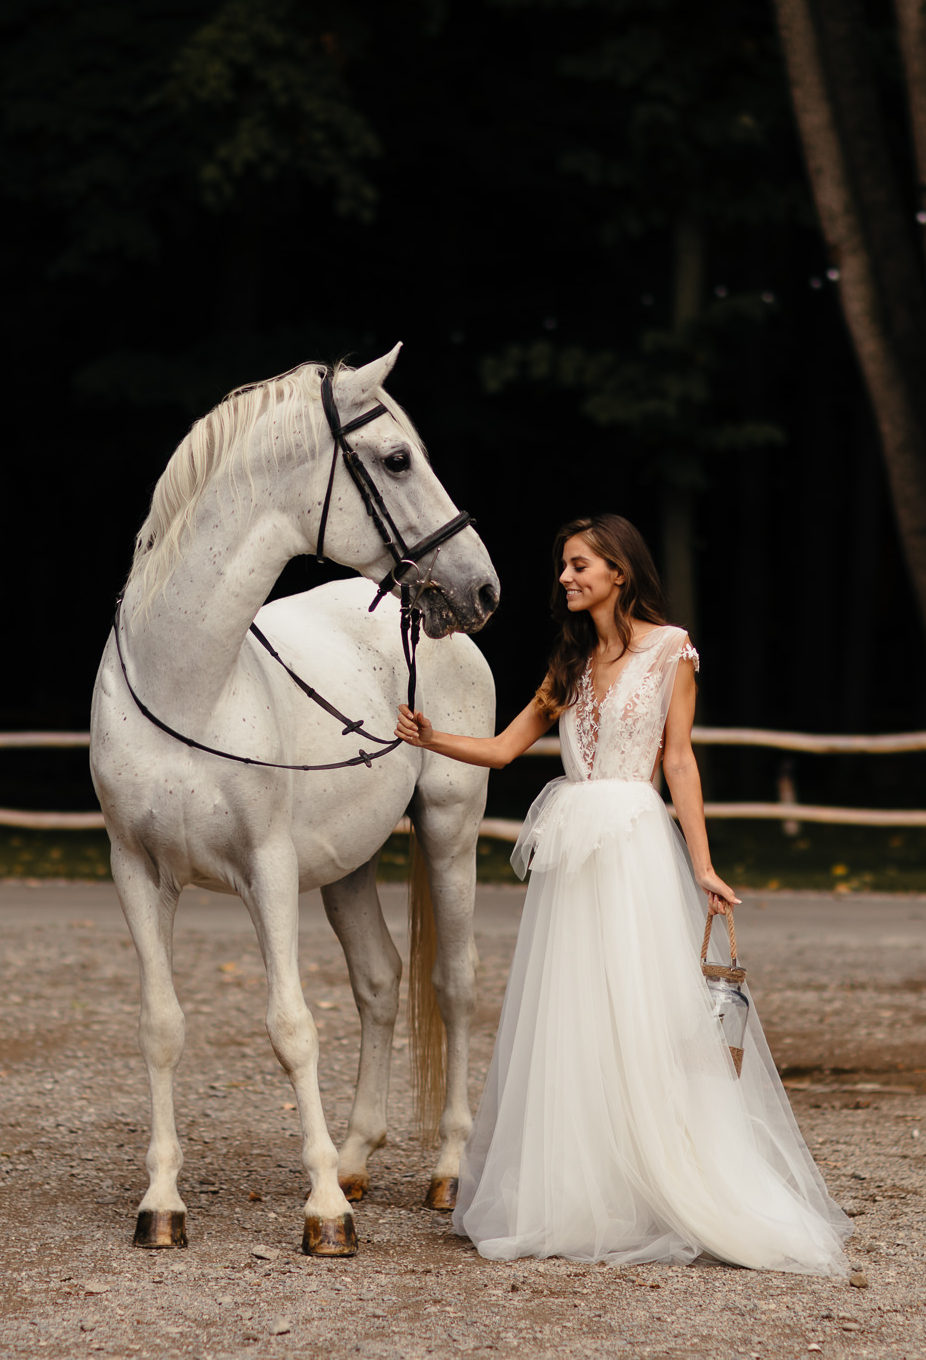 A Real Princess Always Has a White Horse. And a White Dress Of Course